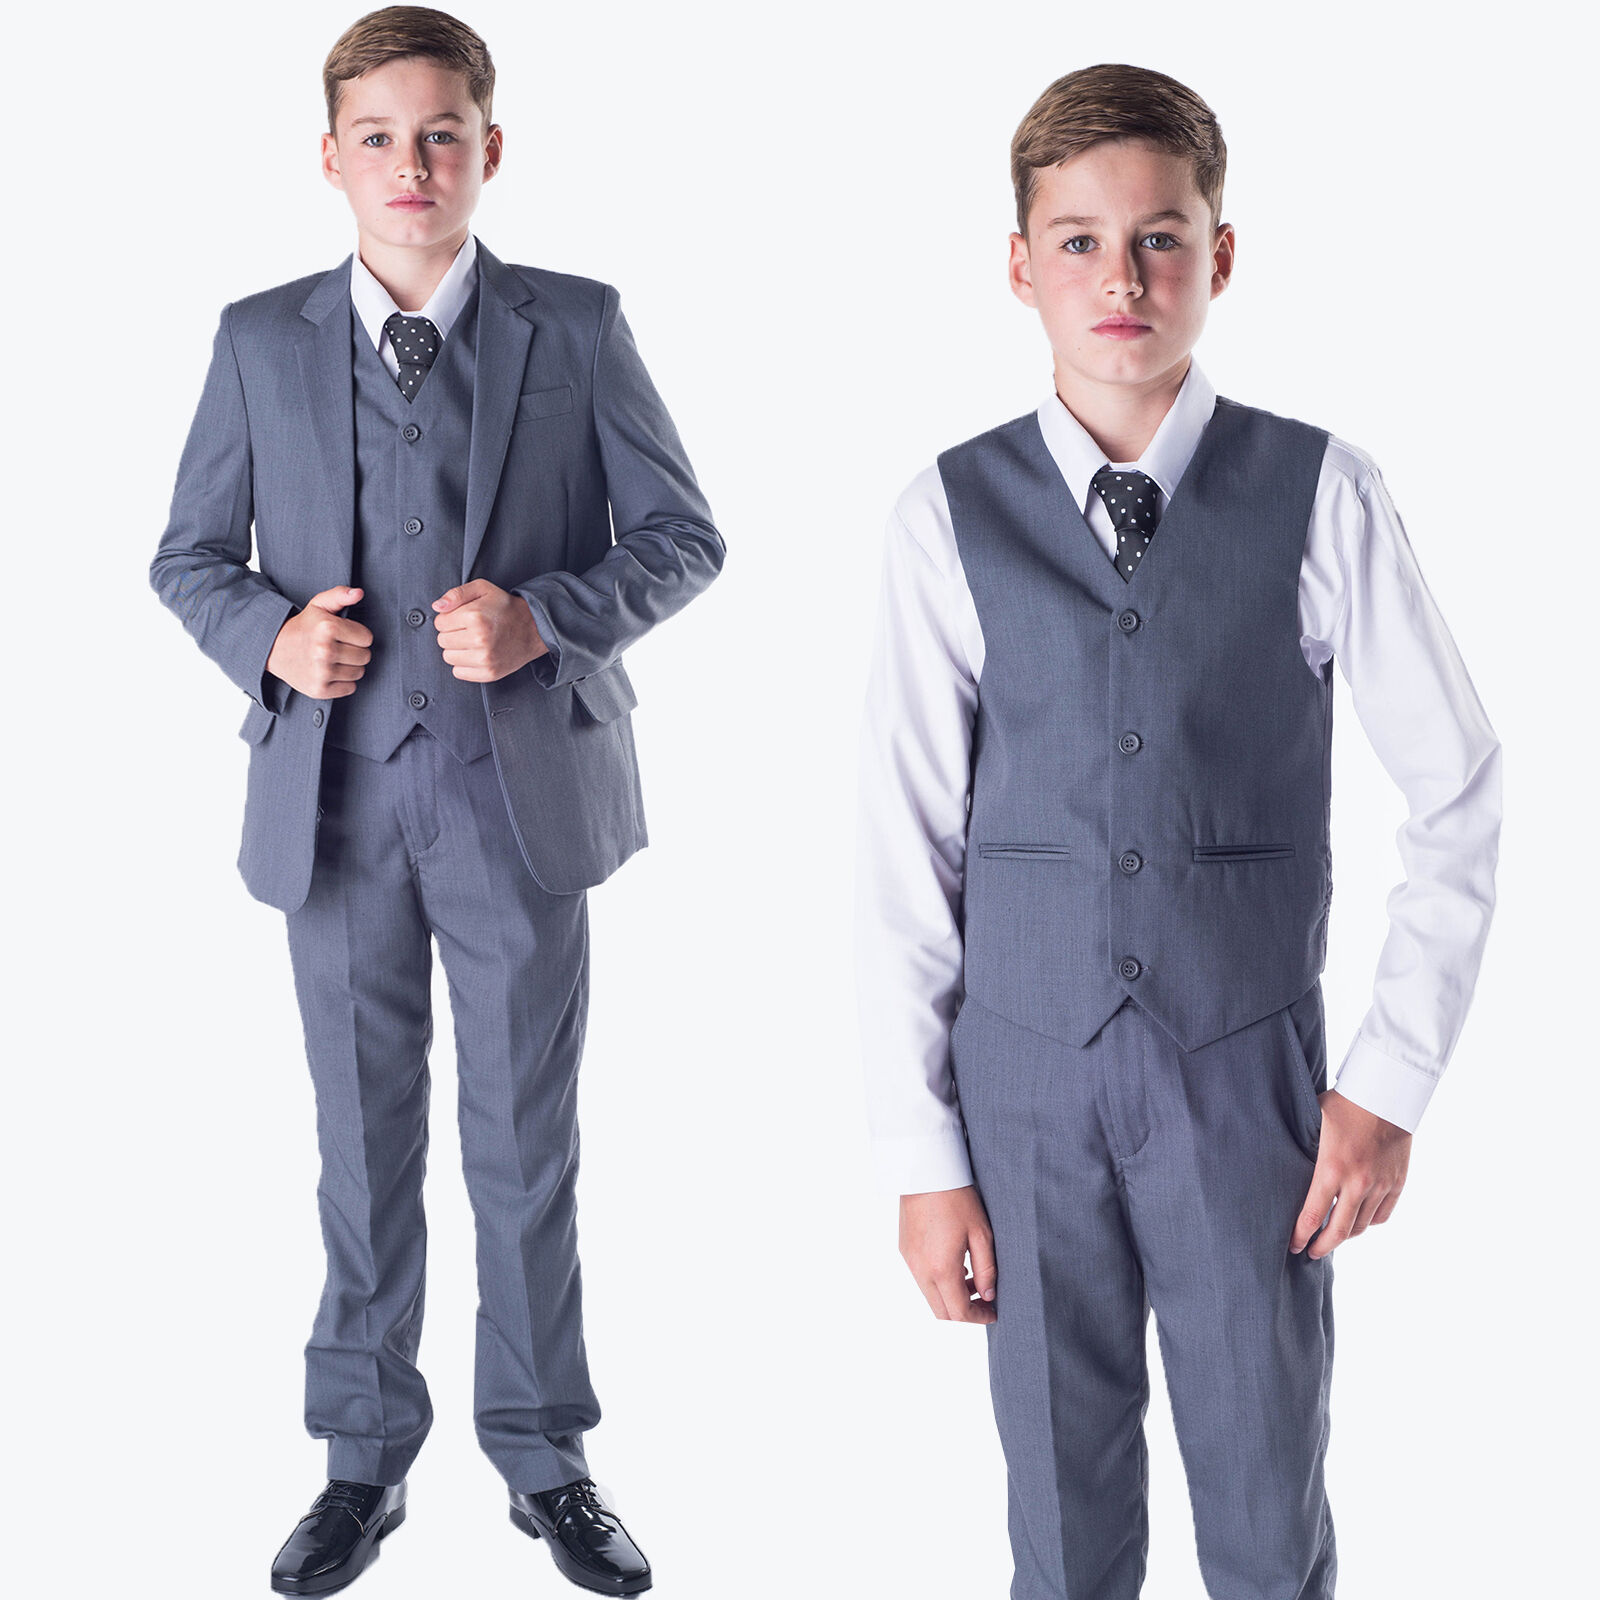 0-3 - 14 yrs Boys Black Suit 5 Piece Wedding Page Boy Baby Formal Party Smart